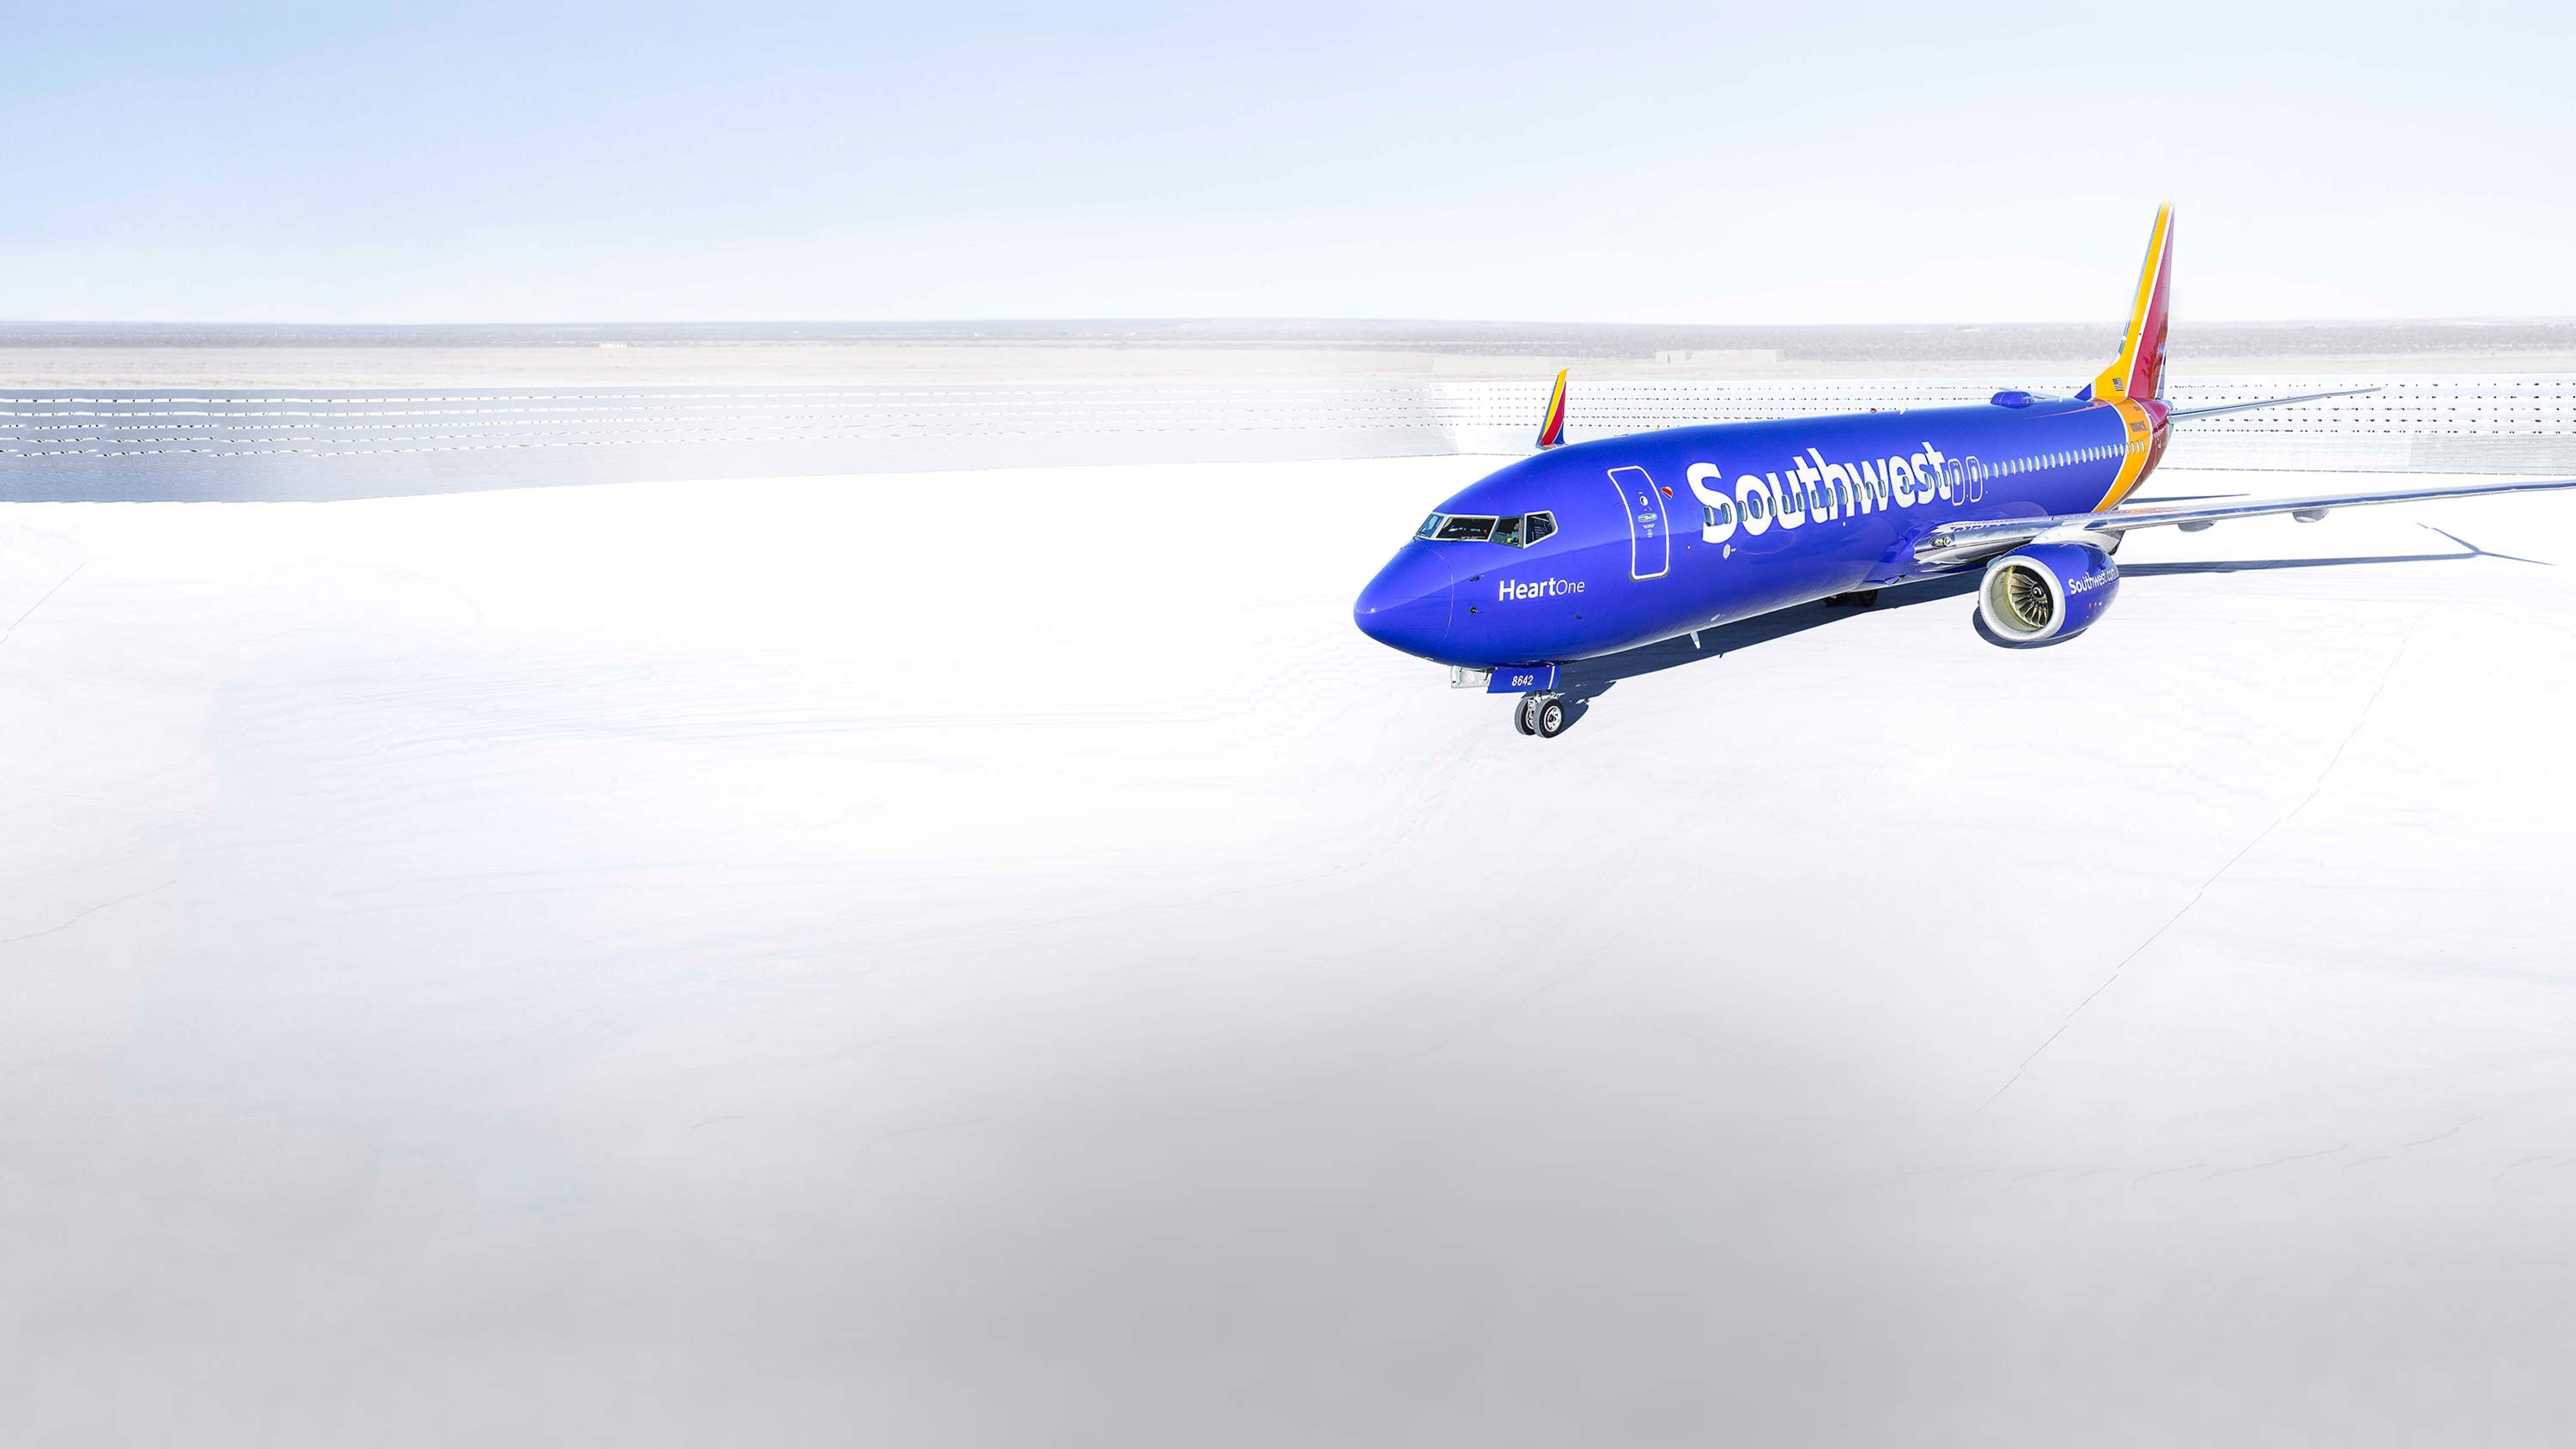 Southwest Airlines Stock Valuation